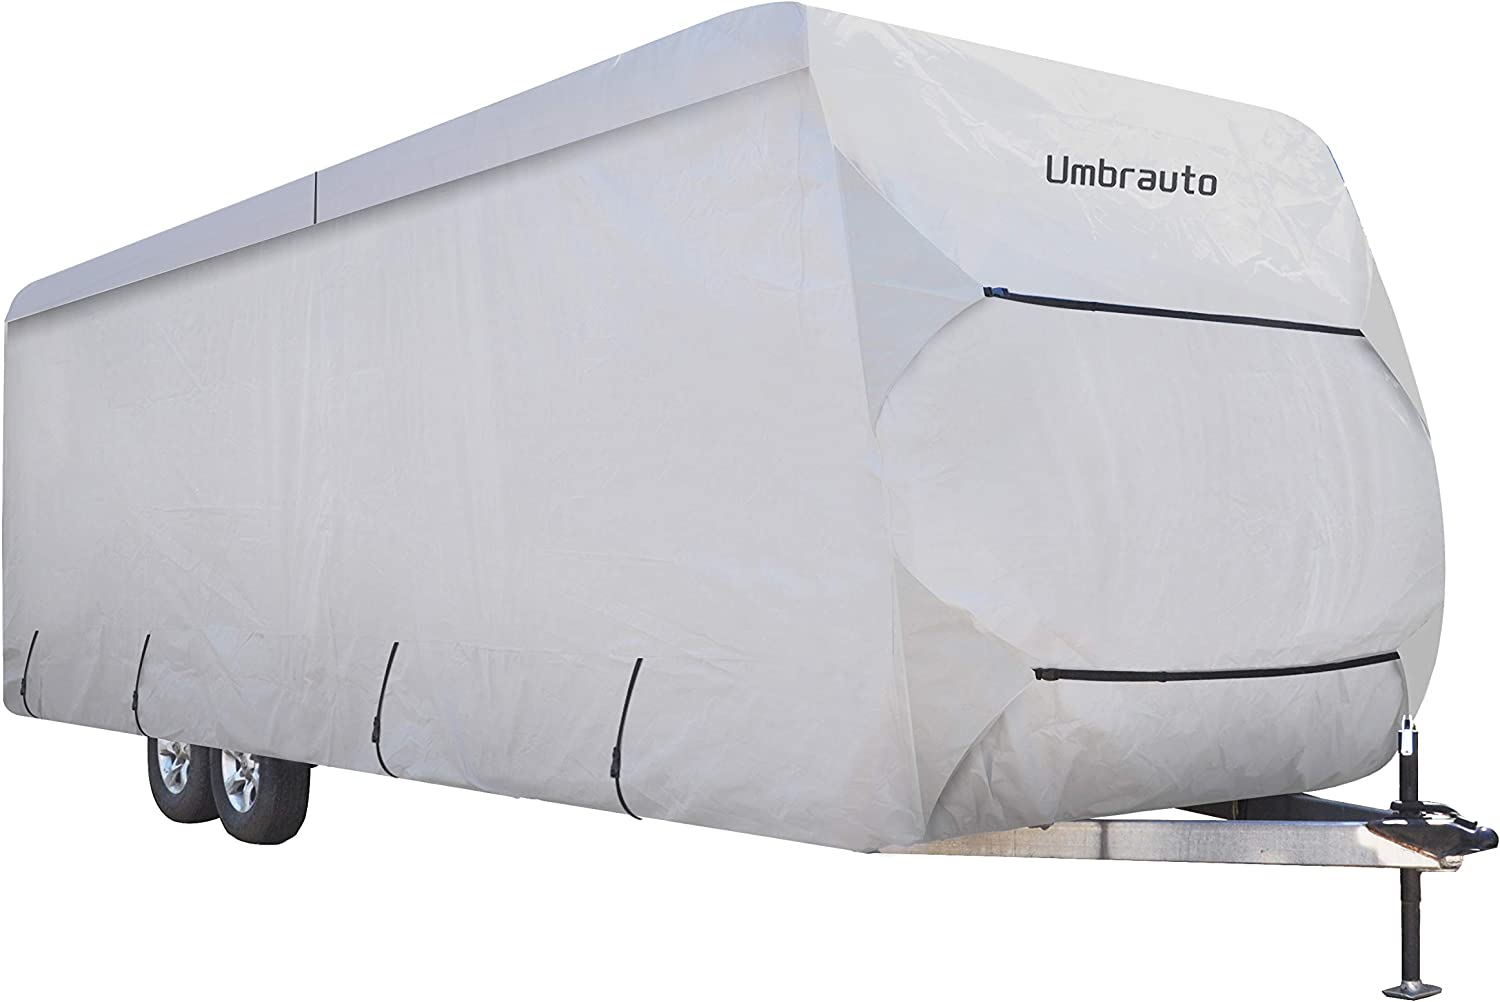 Umbrauto Travel Trailer RV Cover Thick 3 Layers Polypro Anti-UV Top Panel Waterproof Breathable Camper Covers Ripstop Fits 20' Travel Trailer: Automotive